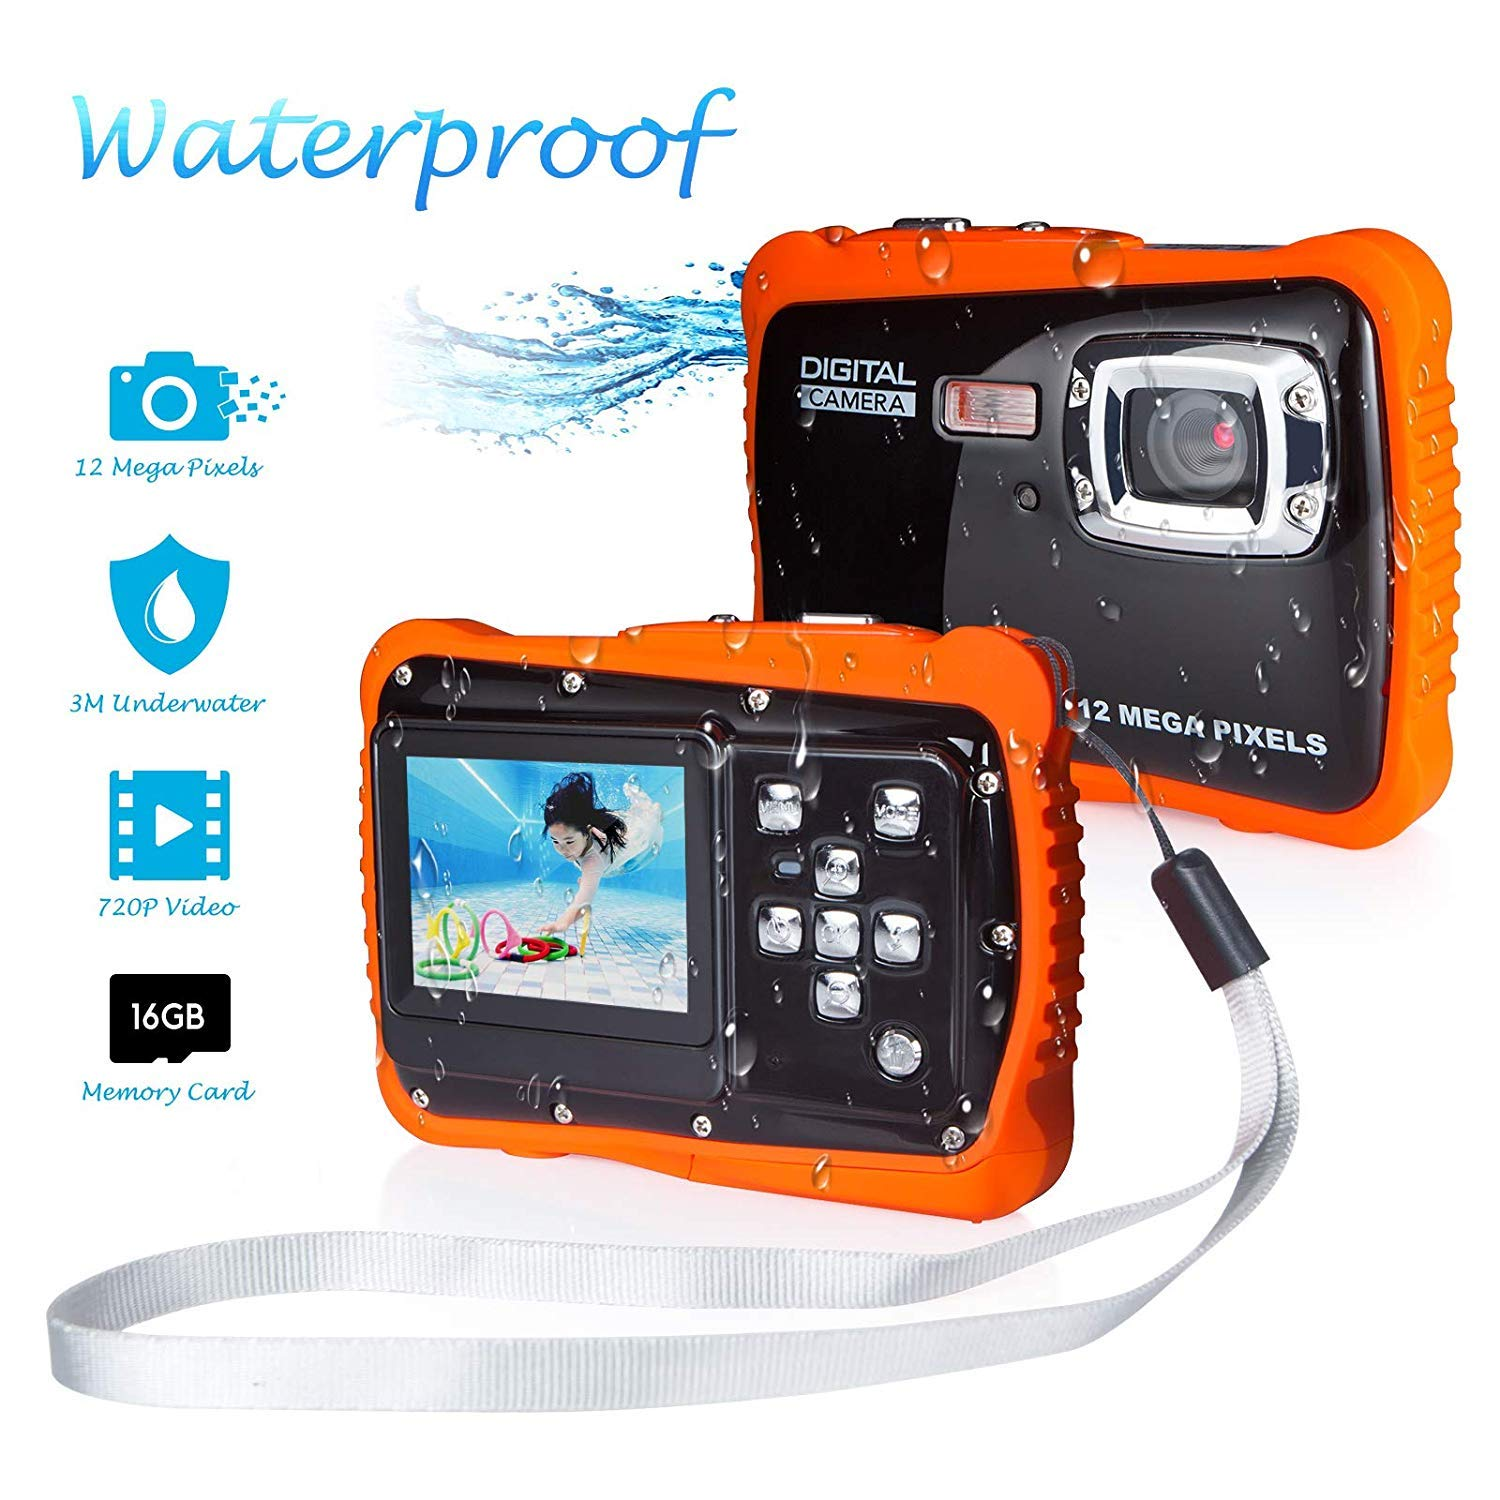 Waterproof Camera for Kids, FLAGPOWER Kids Waterproof Camera for Boys and Girls, 12MP HD Action Sport Camcorder with 2.0 Inch LCD Display 4X Digital Zoom 5MP CMOS Sensor 16G Memory Card Flash by FLAGPOWER